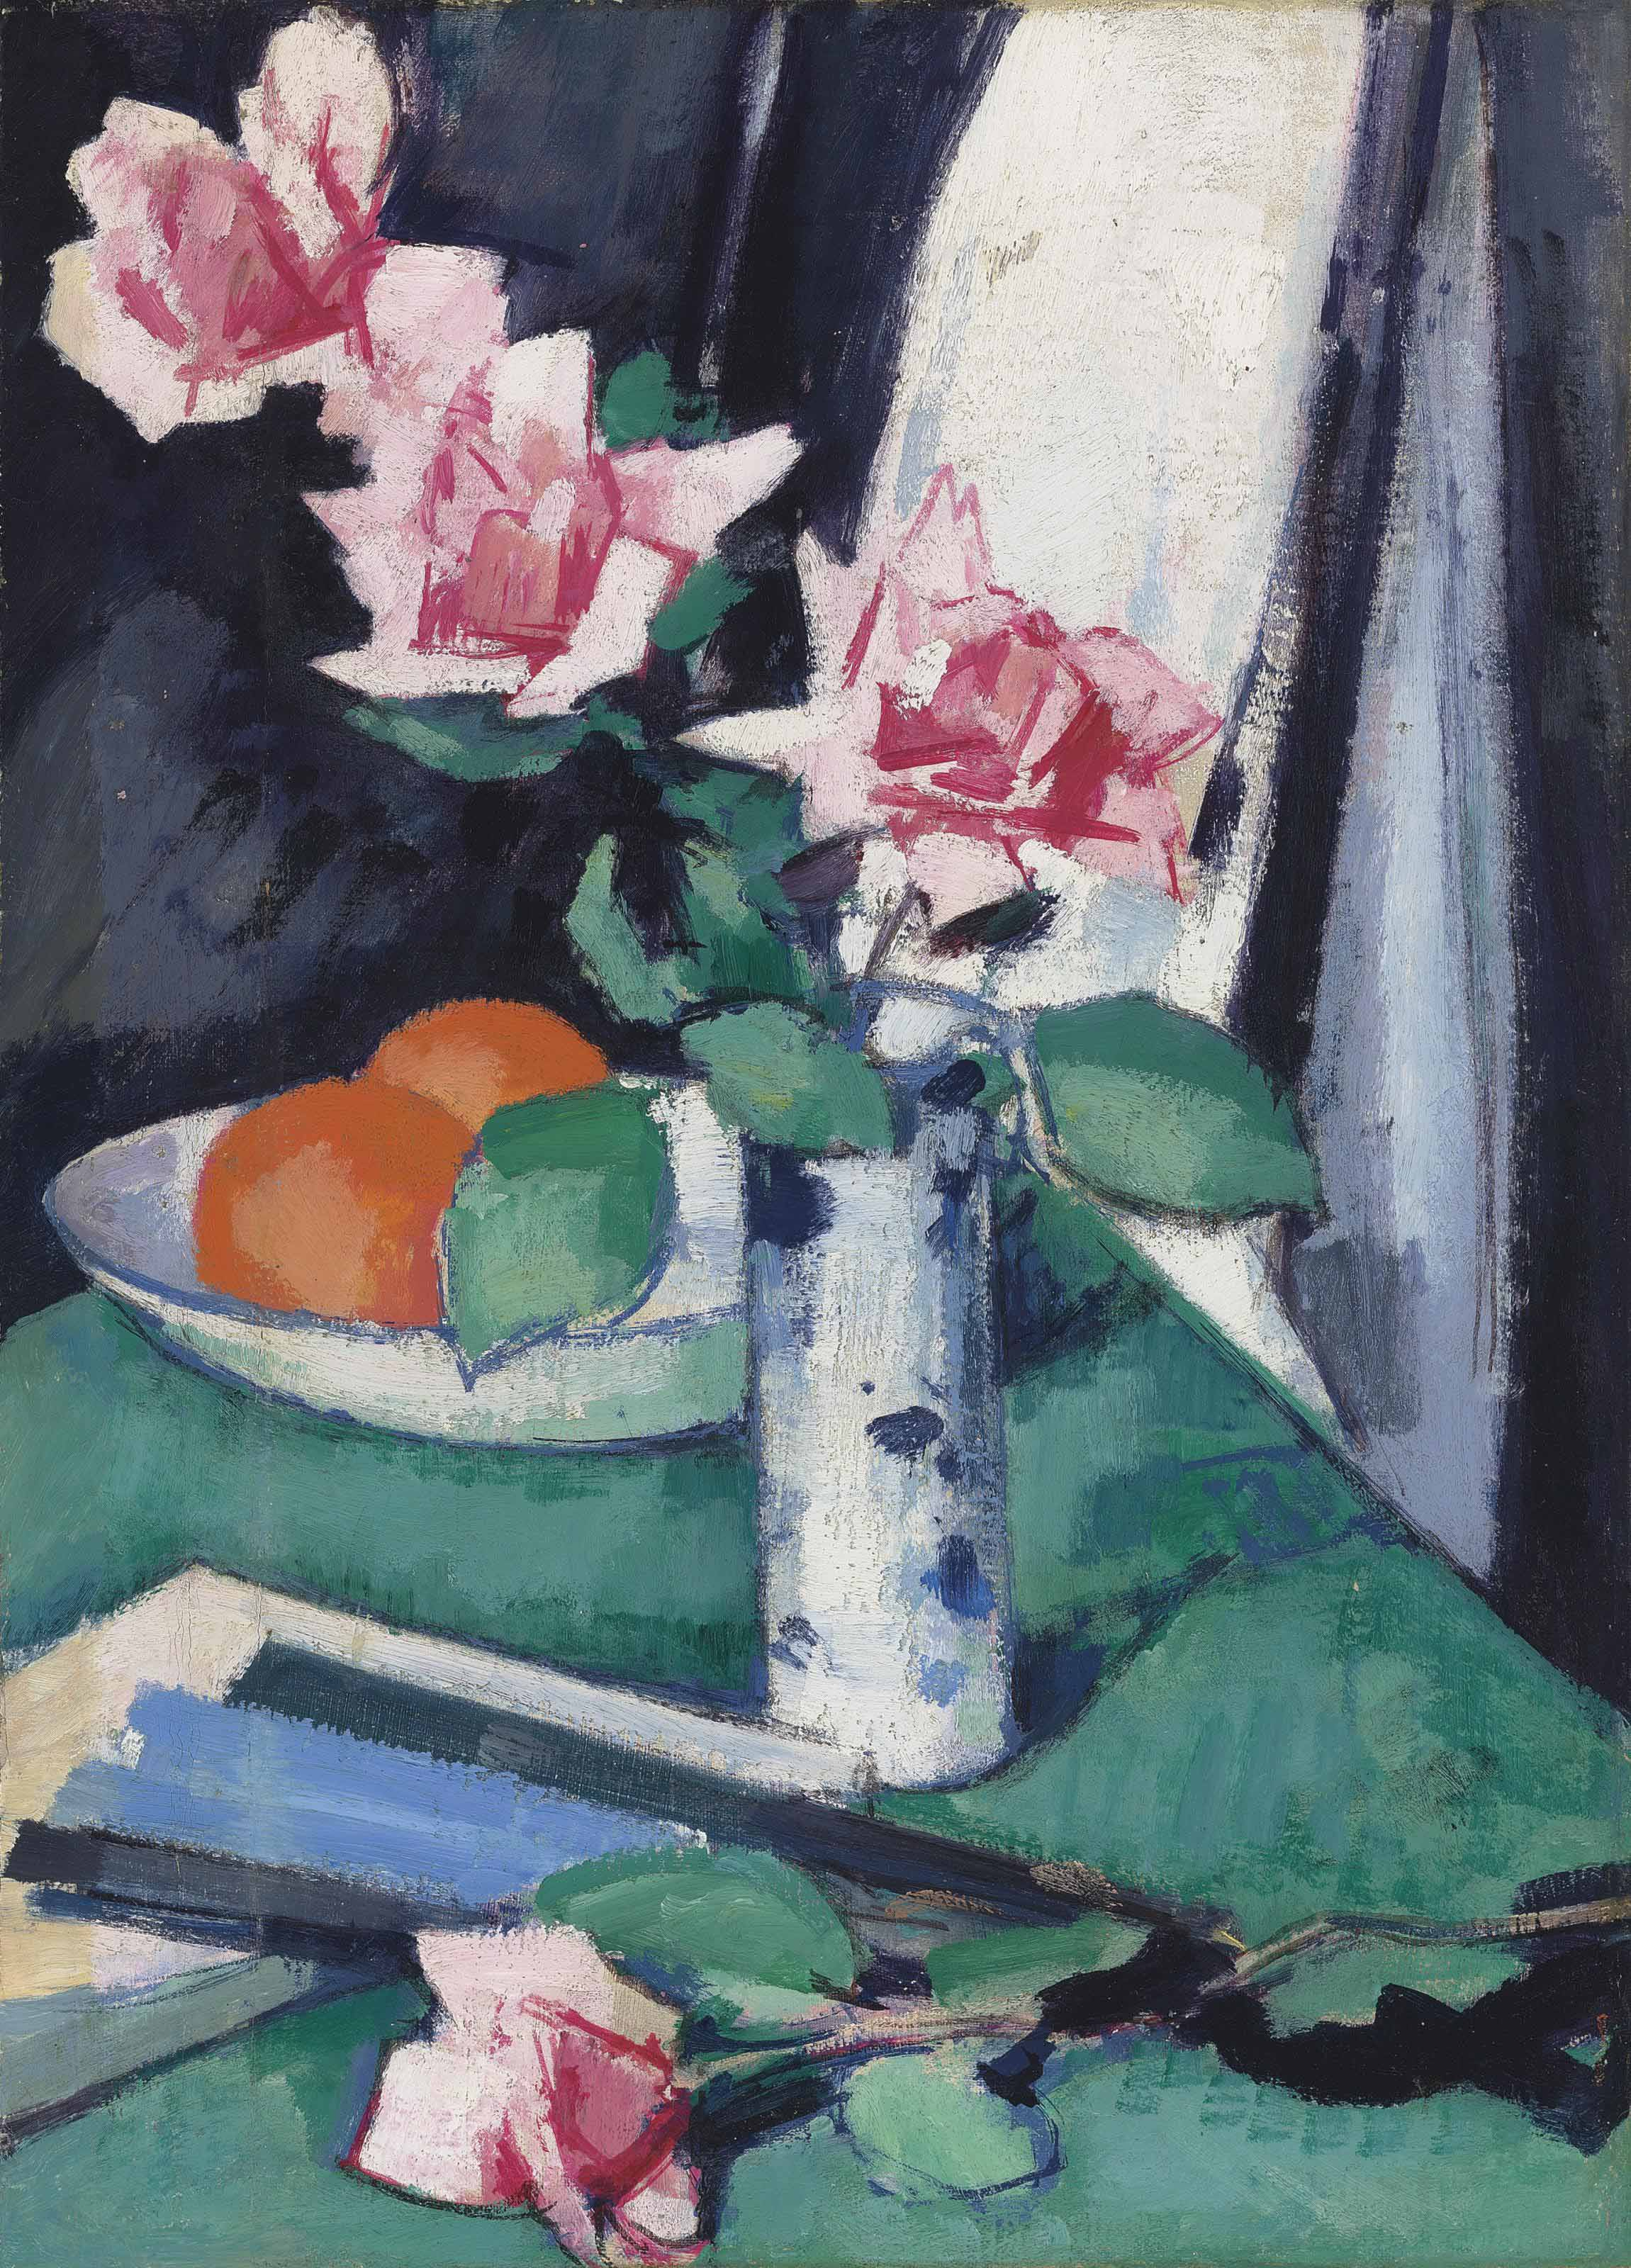 Still life with Pink Roses and Oranges in a blue and white vase